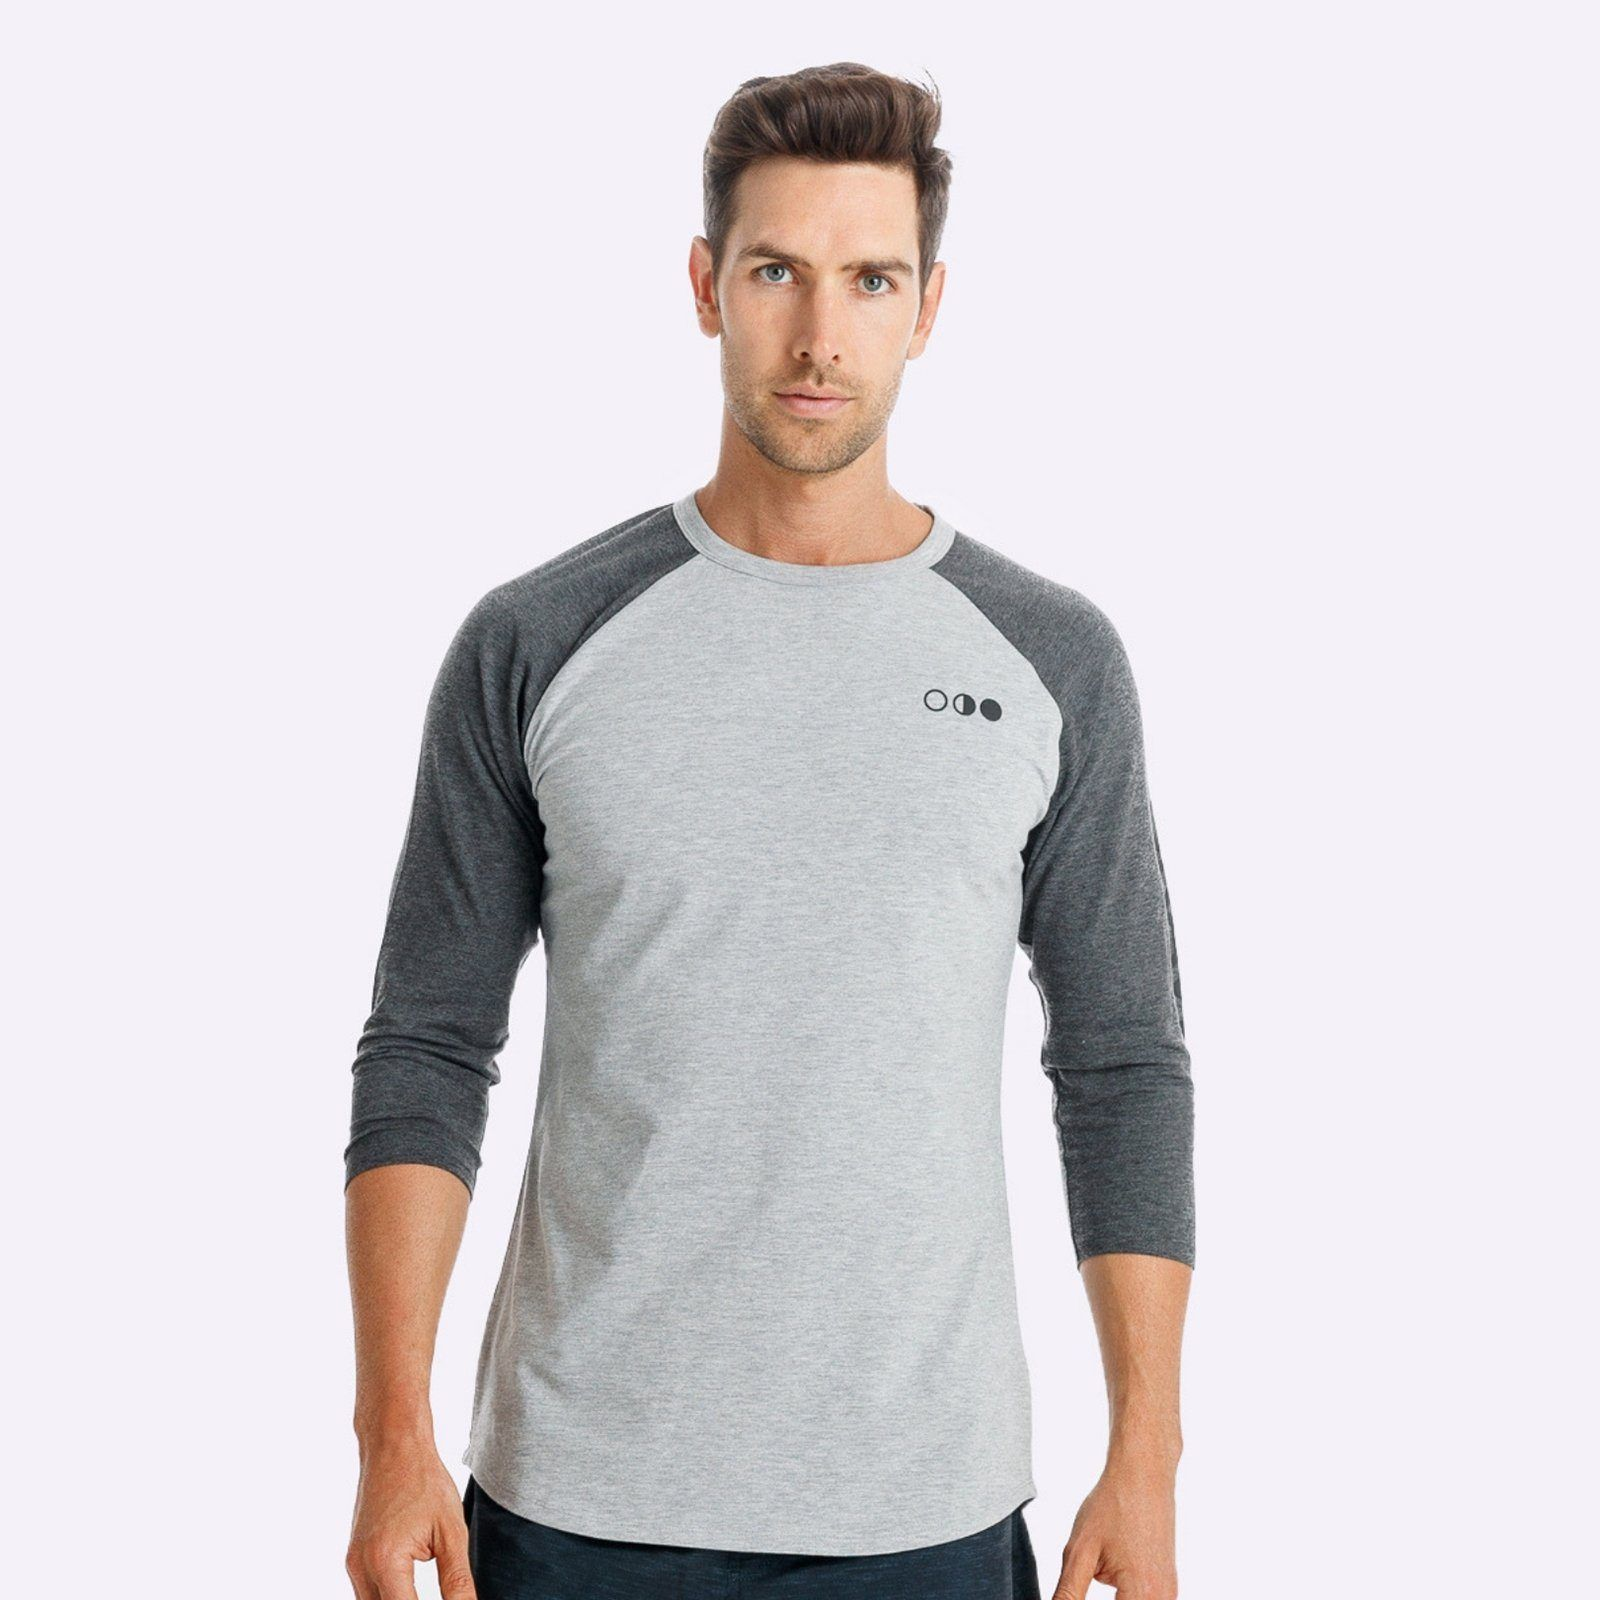 The Brave - Men's Adventure Raglan Shirt - Light Grey Marle/Charcoal Marle